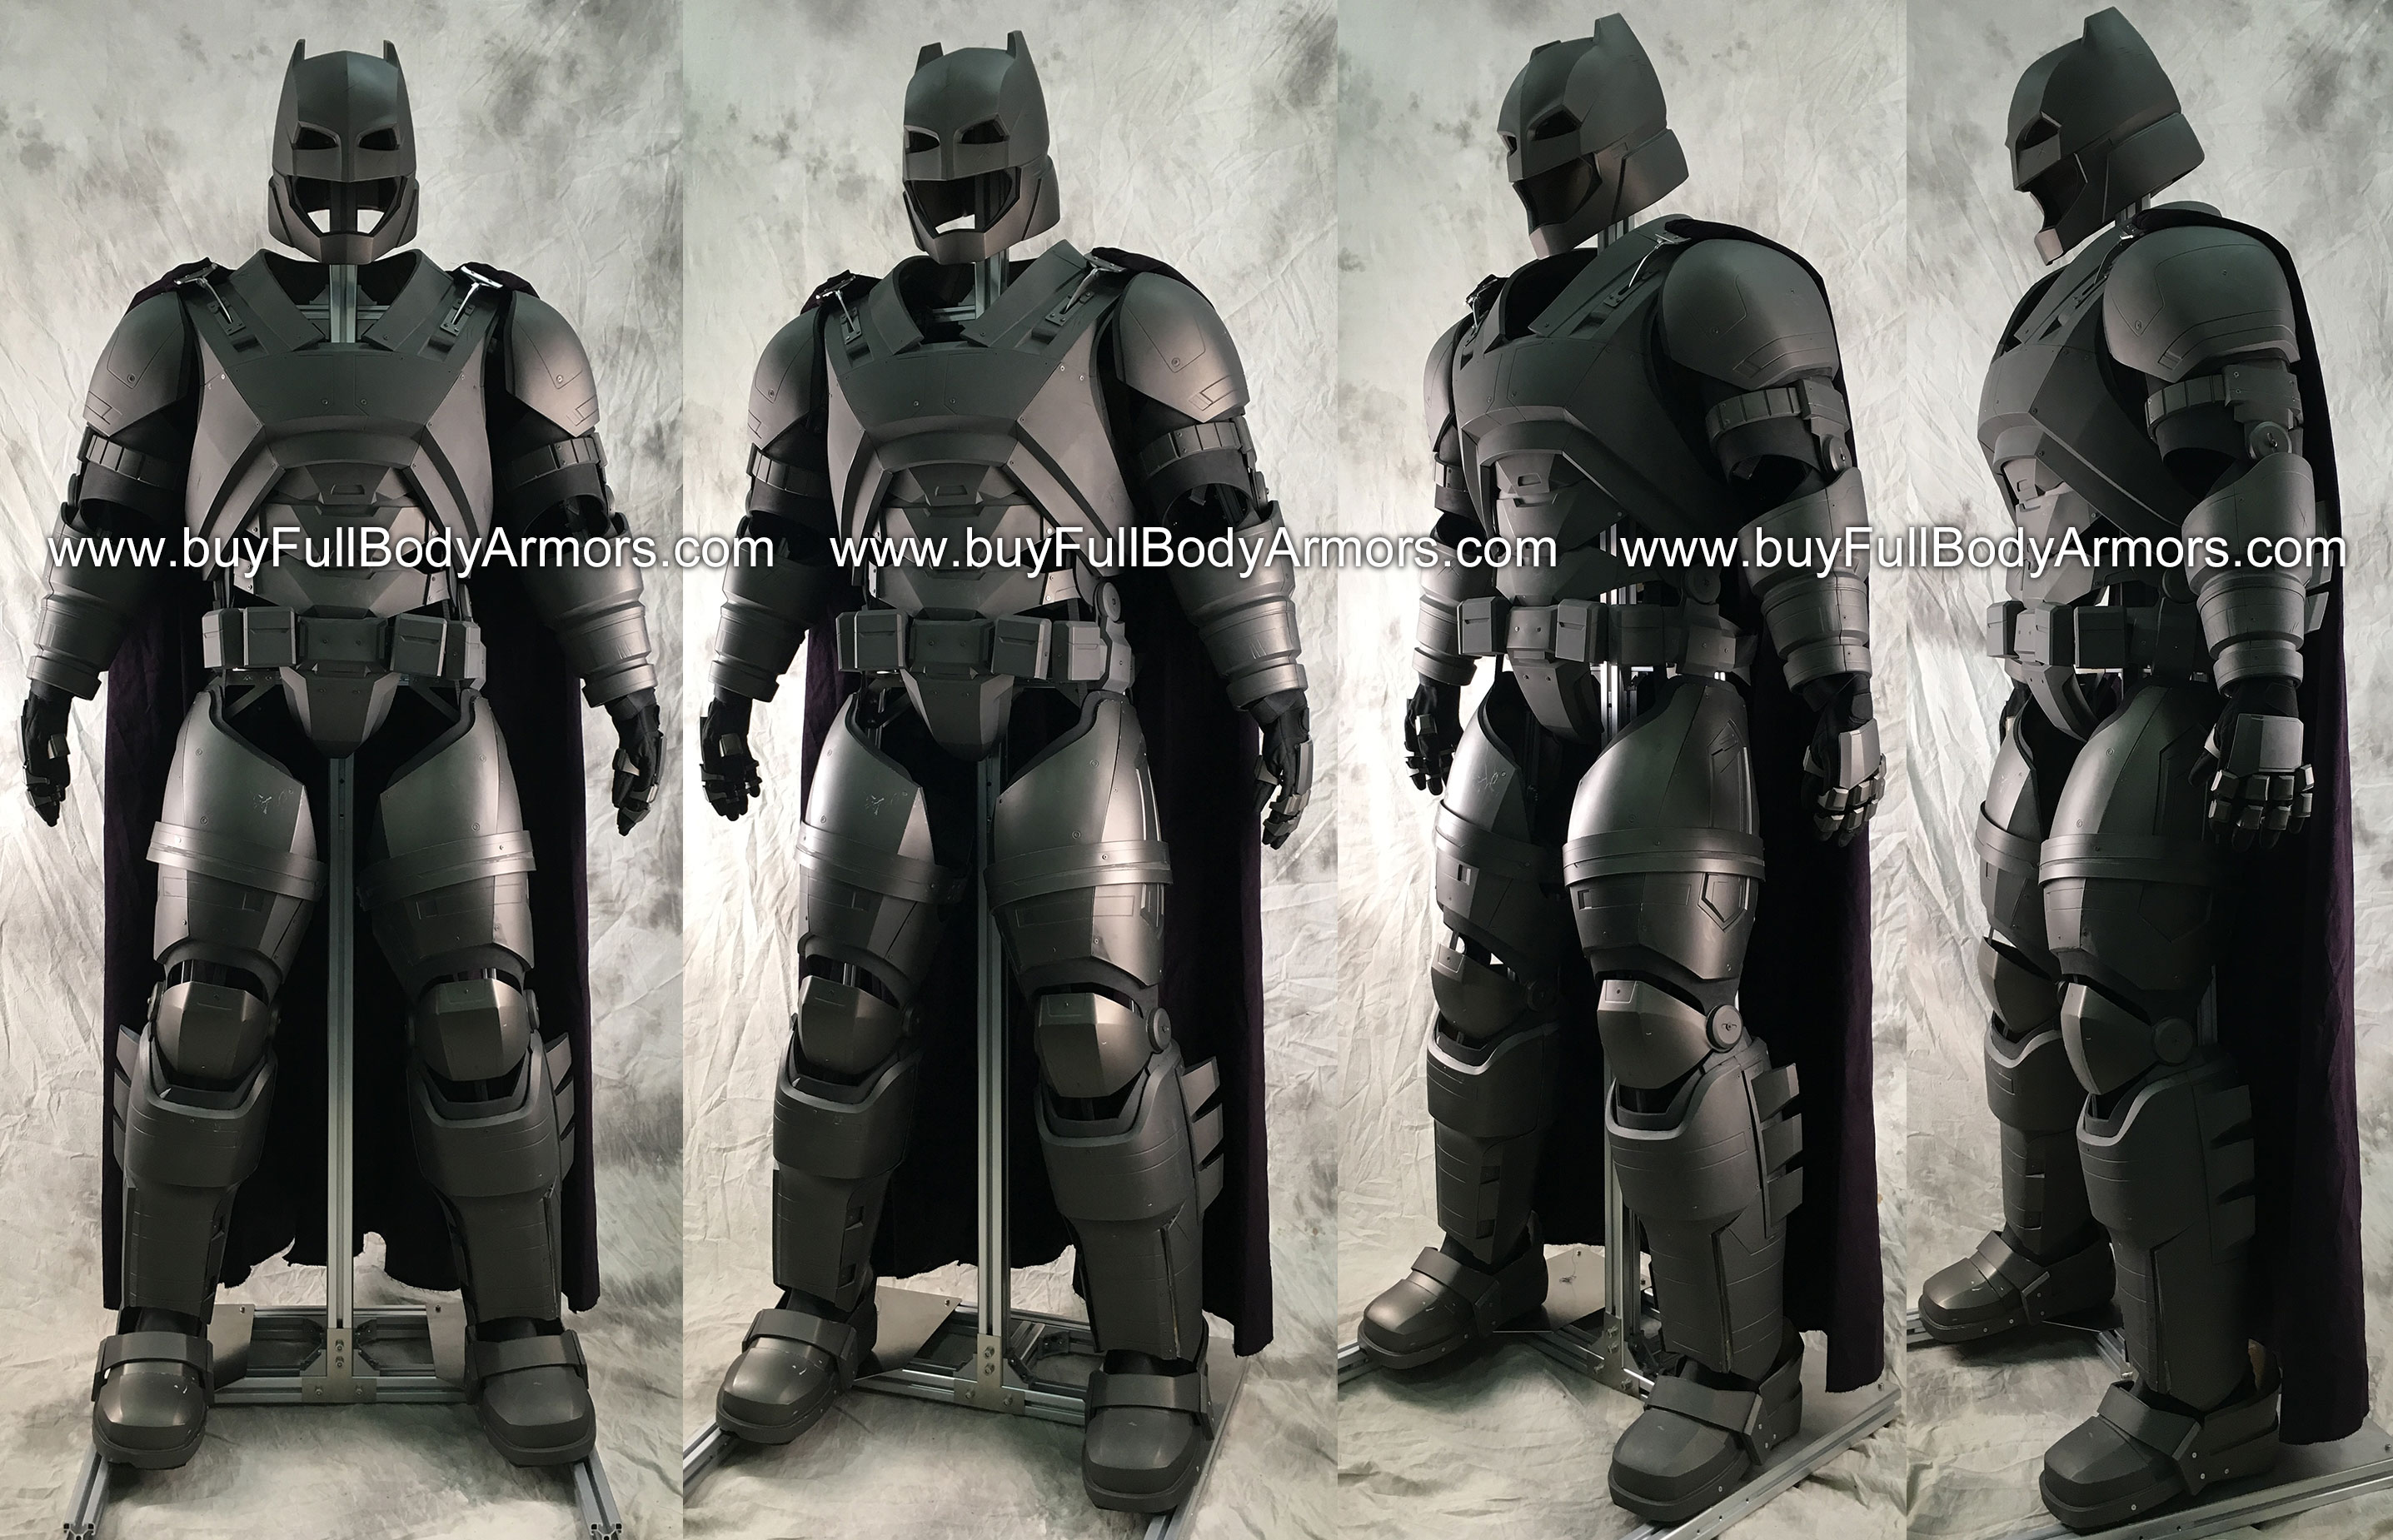 Universal Aluminium Alloy Support (UAAS) for All Our Armor Costumes is Available Now 2